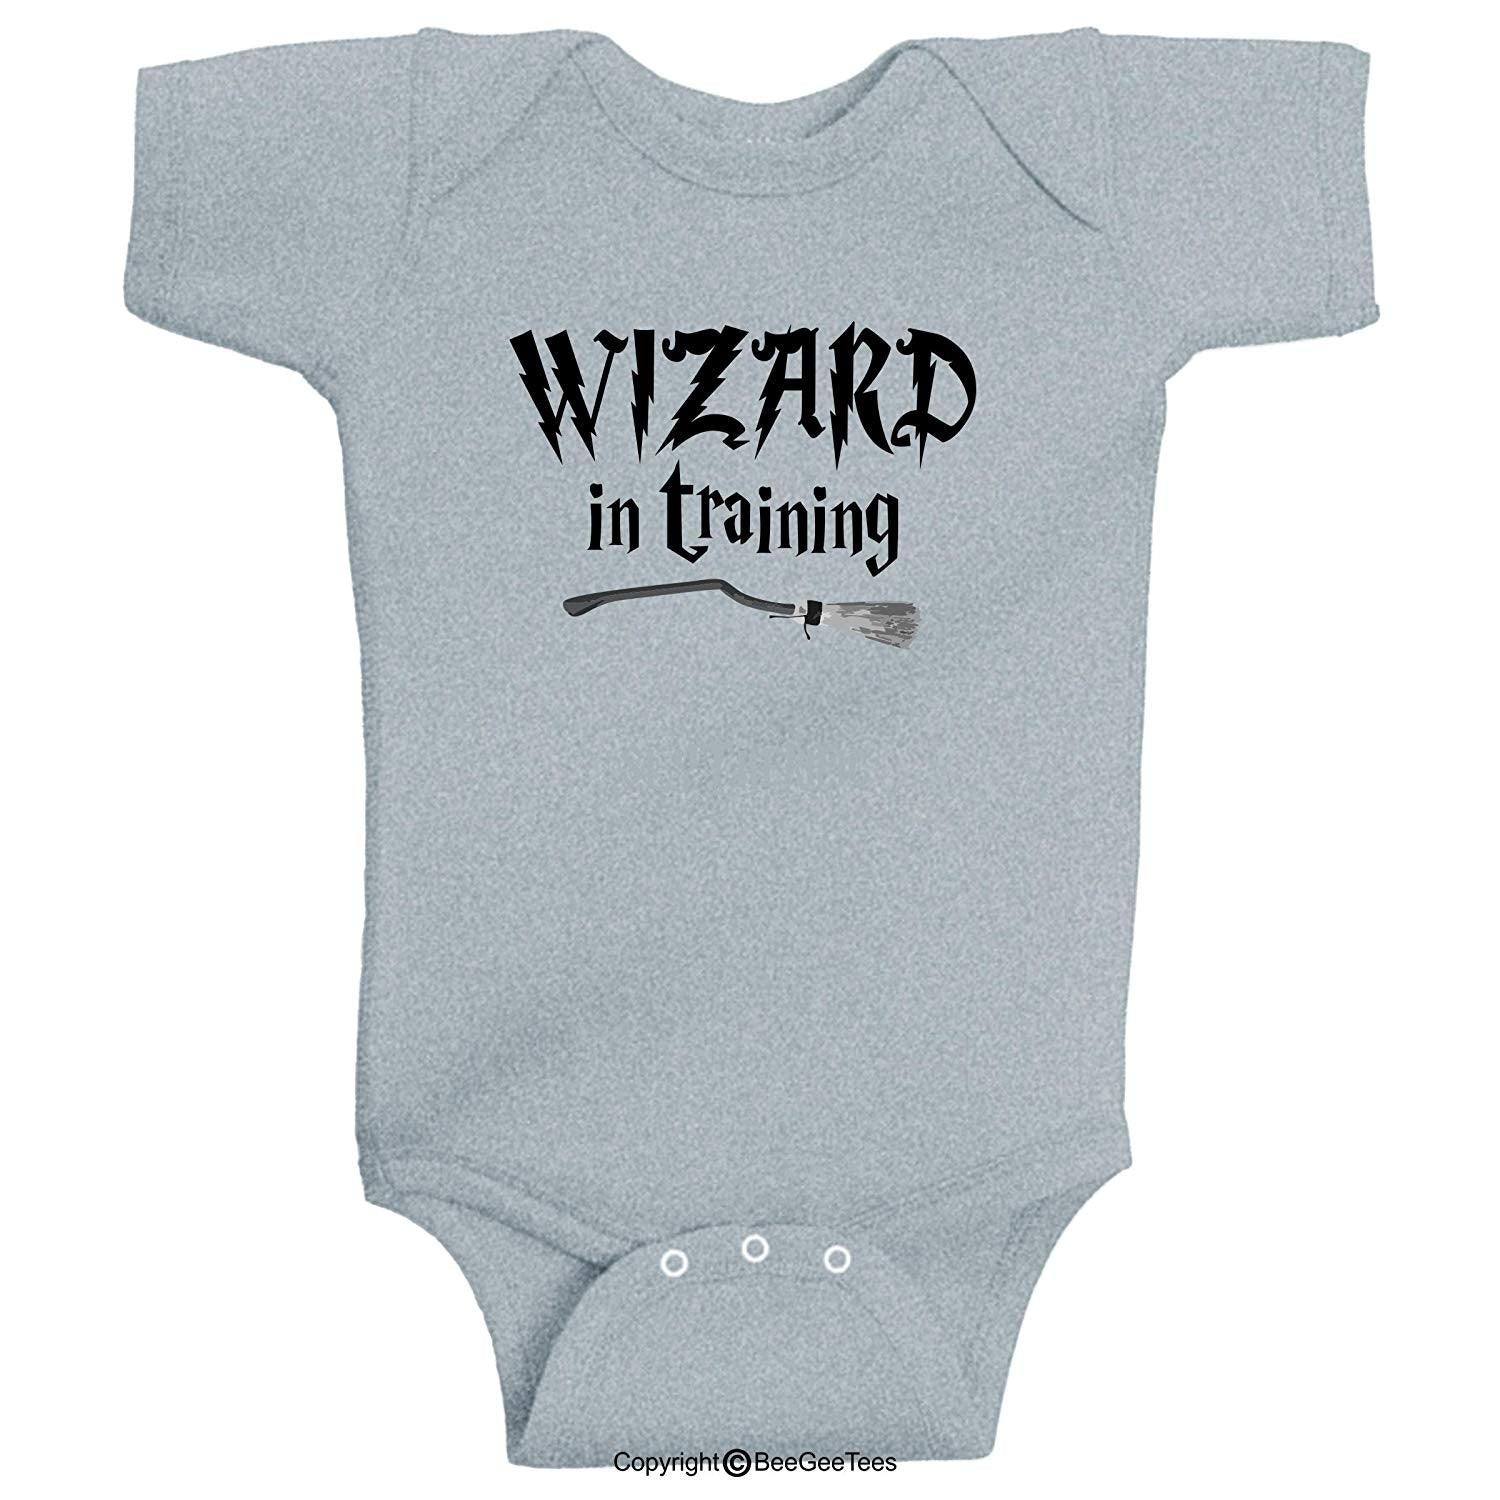 Wizard In Training Harry Potter Inspired Baby Bodysuit by BeeGeeTees